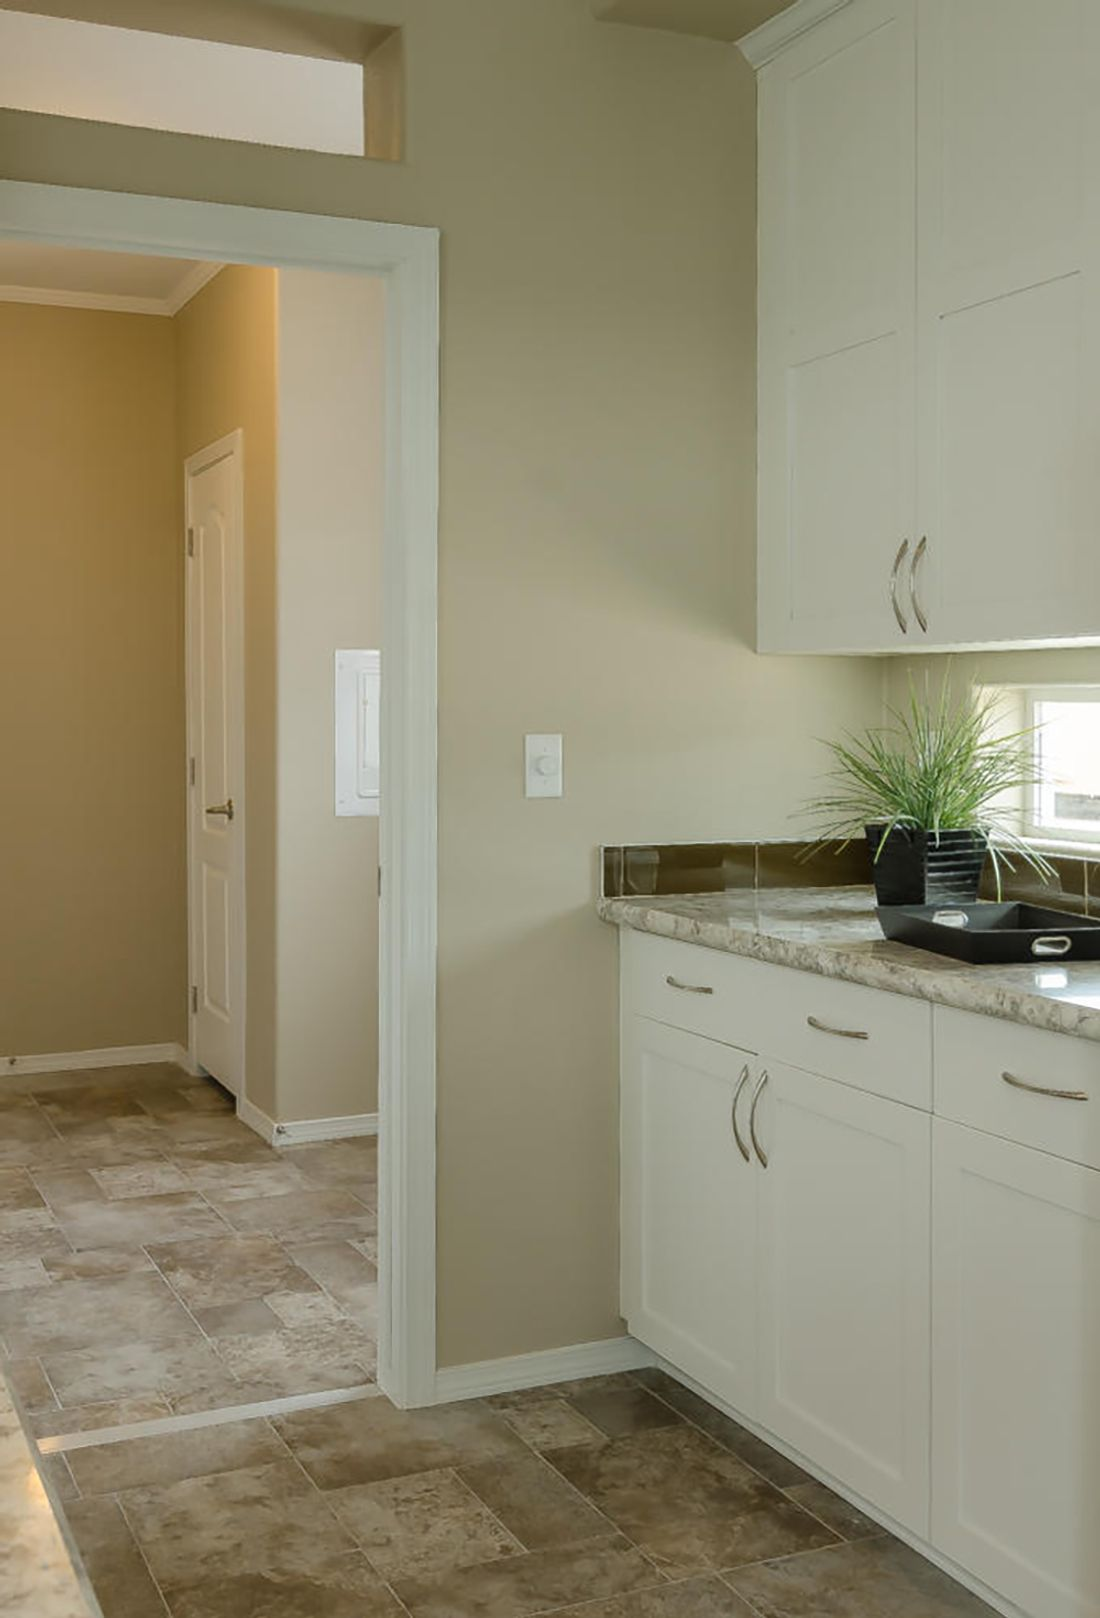 The TRANQUILITY TR3062A Kitchen. This Manufactured Mobile Home features 3 bedrooms and 2 baths.